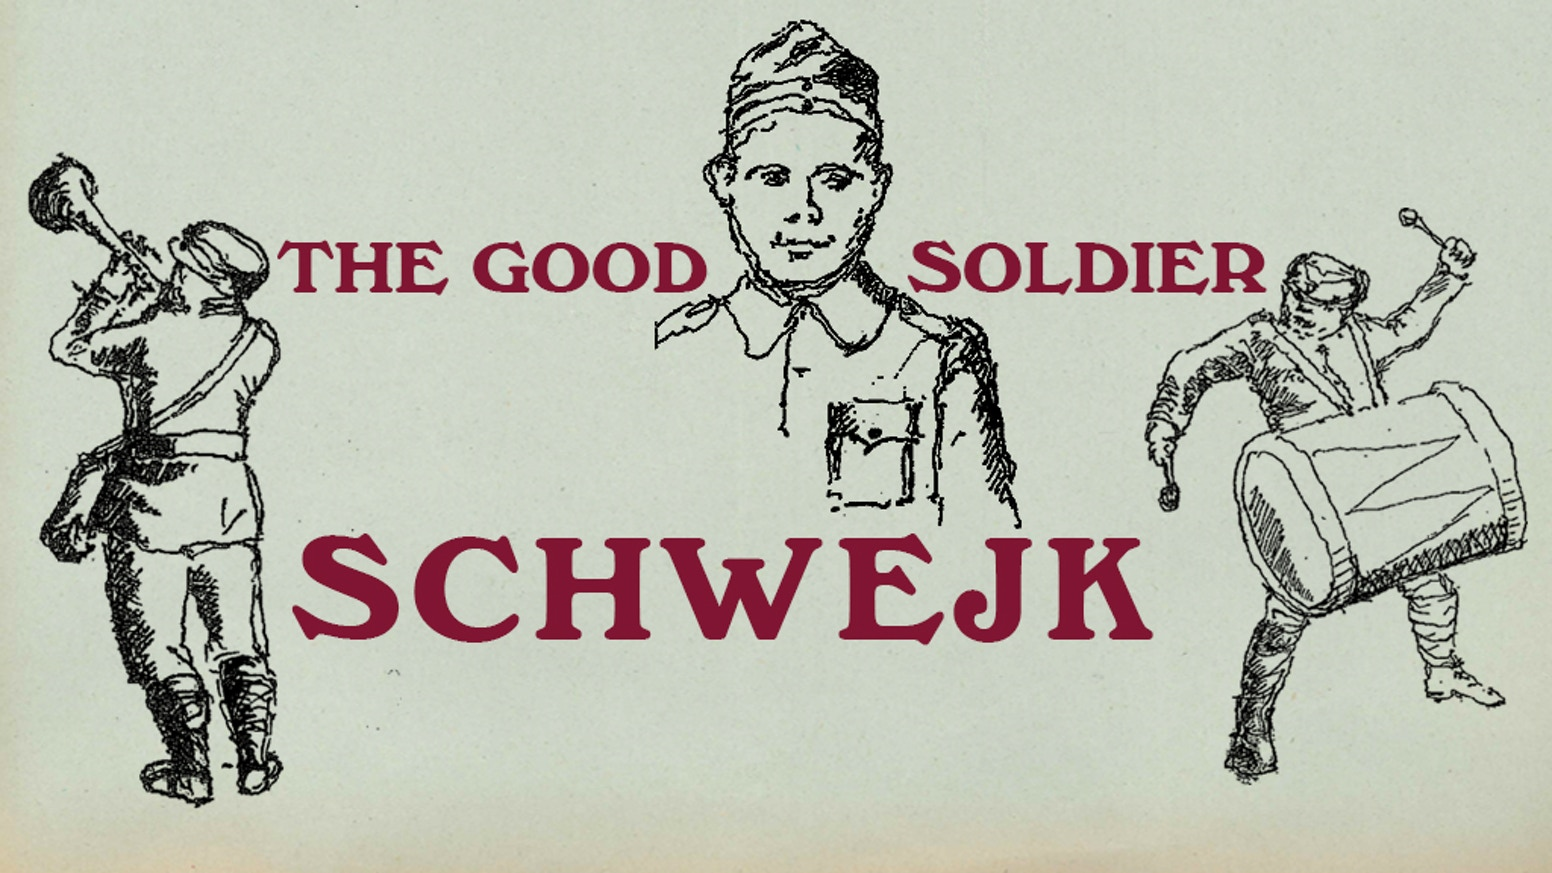 Sands Films seeks support towards the music budget of its new adaption of the satirical anti-war novel The Good Soldier Schwejk